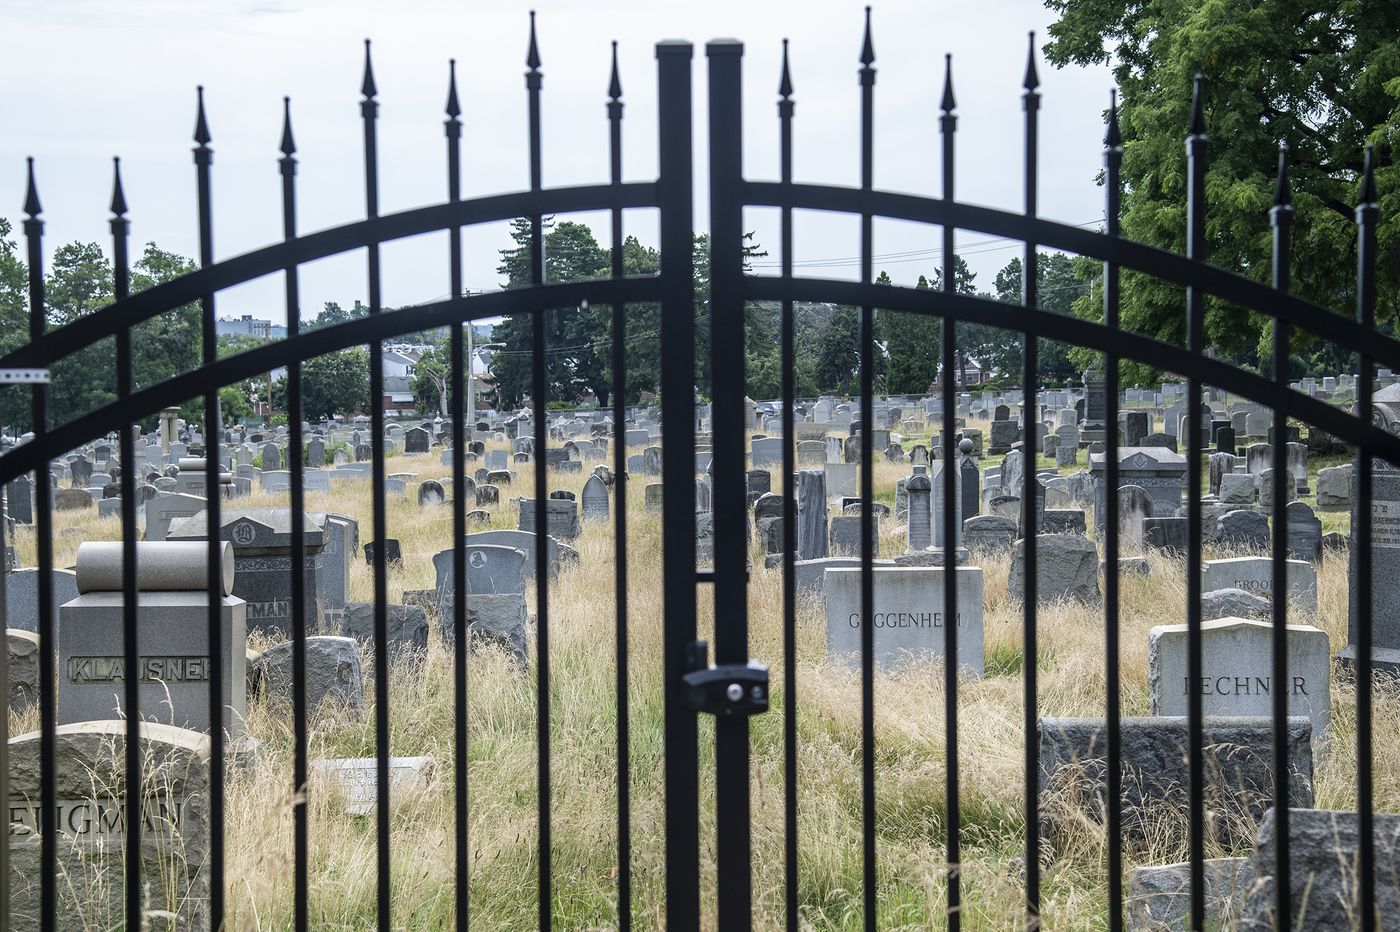 Locked gates and 4-foot-tall grass: Conditions at 2 Philly cemeteries leave families in anguish